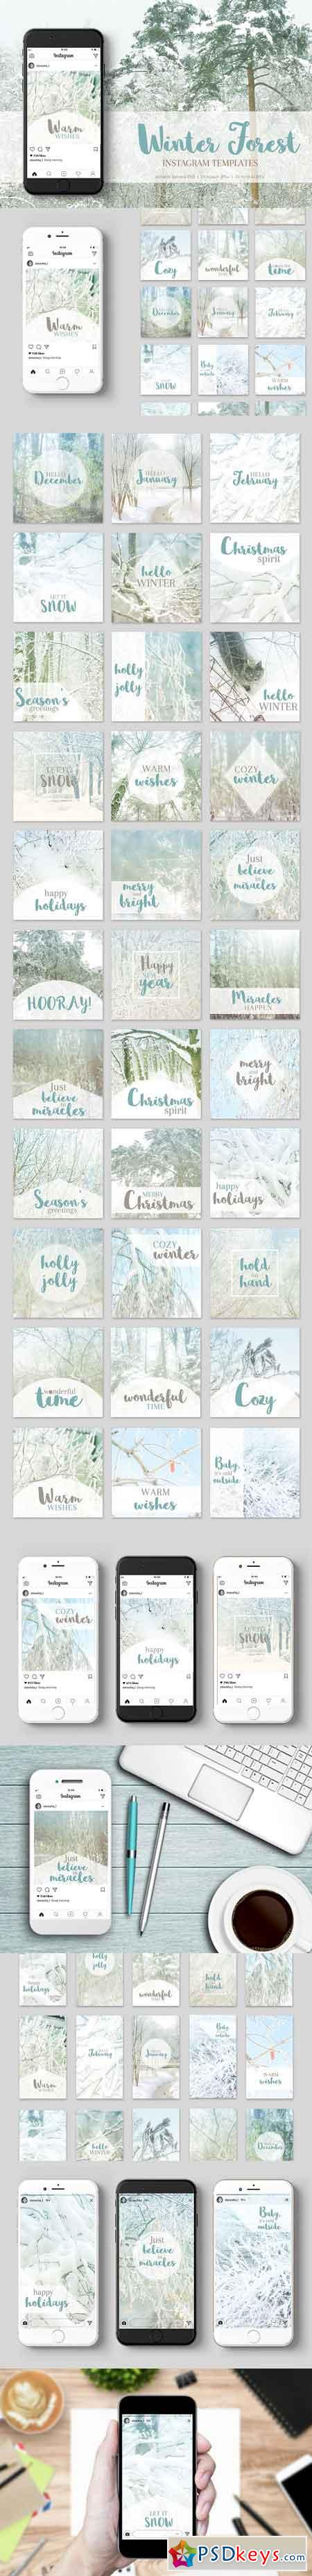 Instagram Winter Pack 2118885